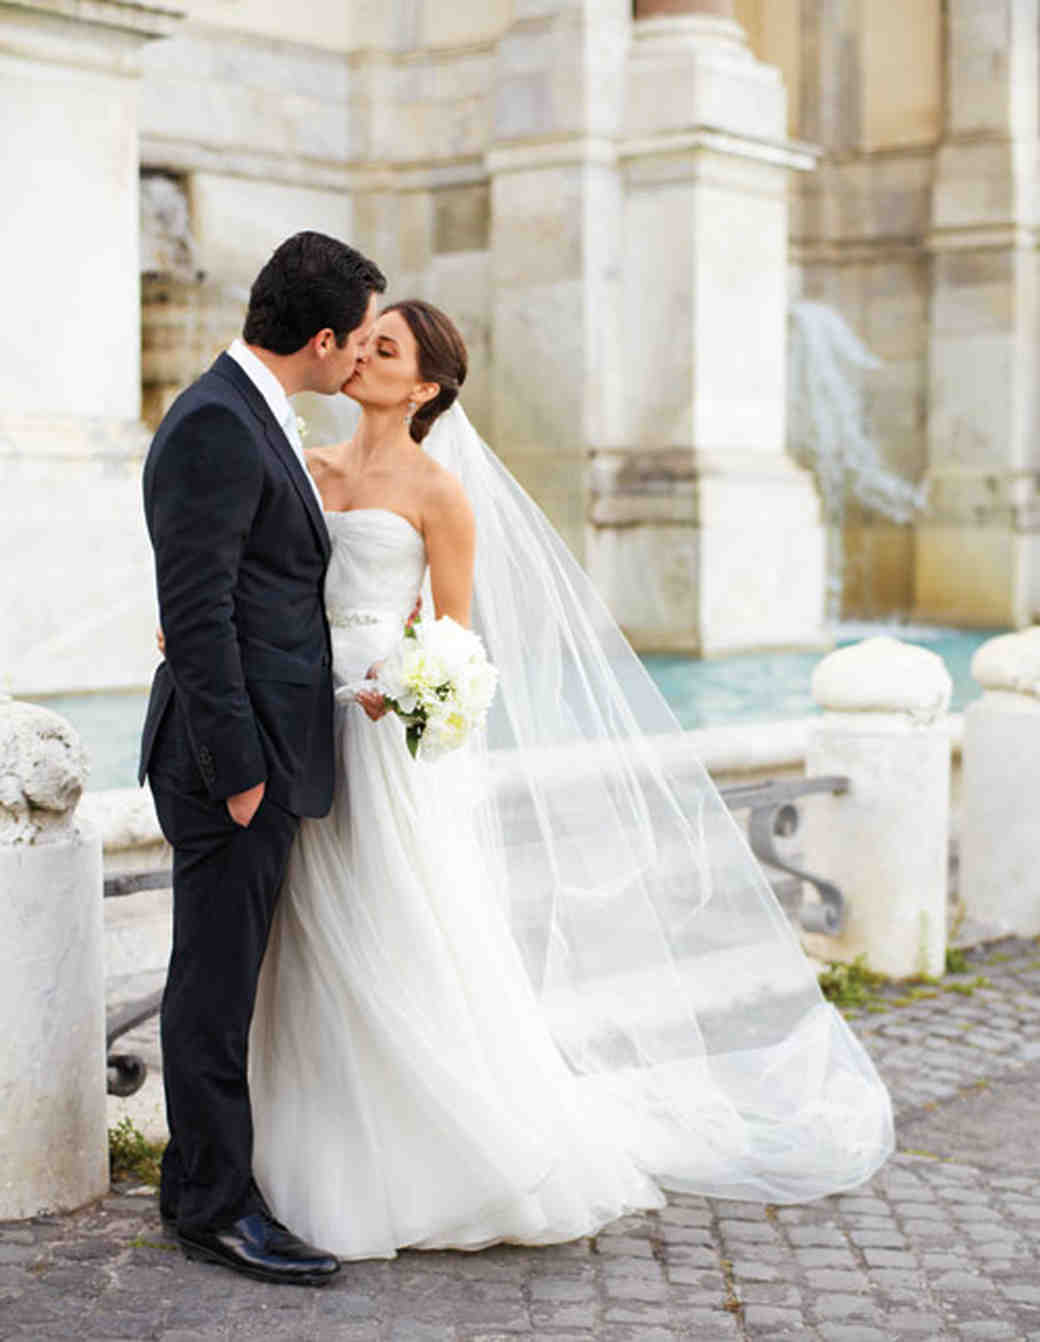 A Whimsical DIY Destination Wedding in Italy | Martha Stewart Weddings